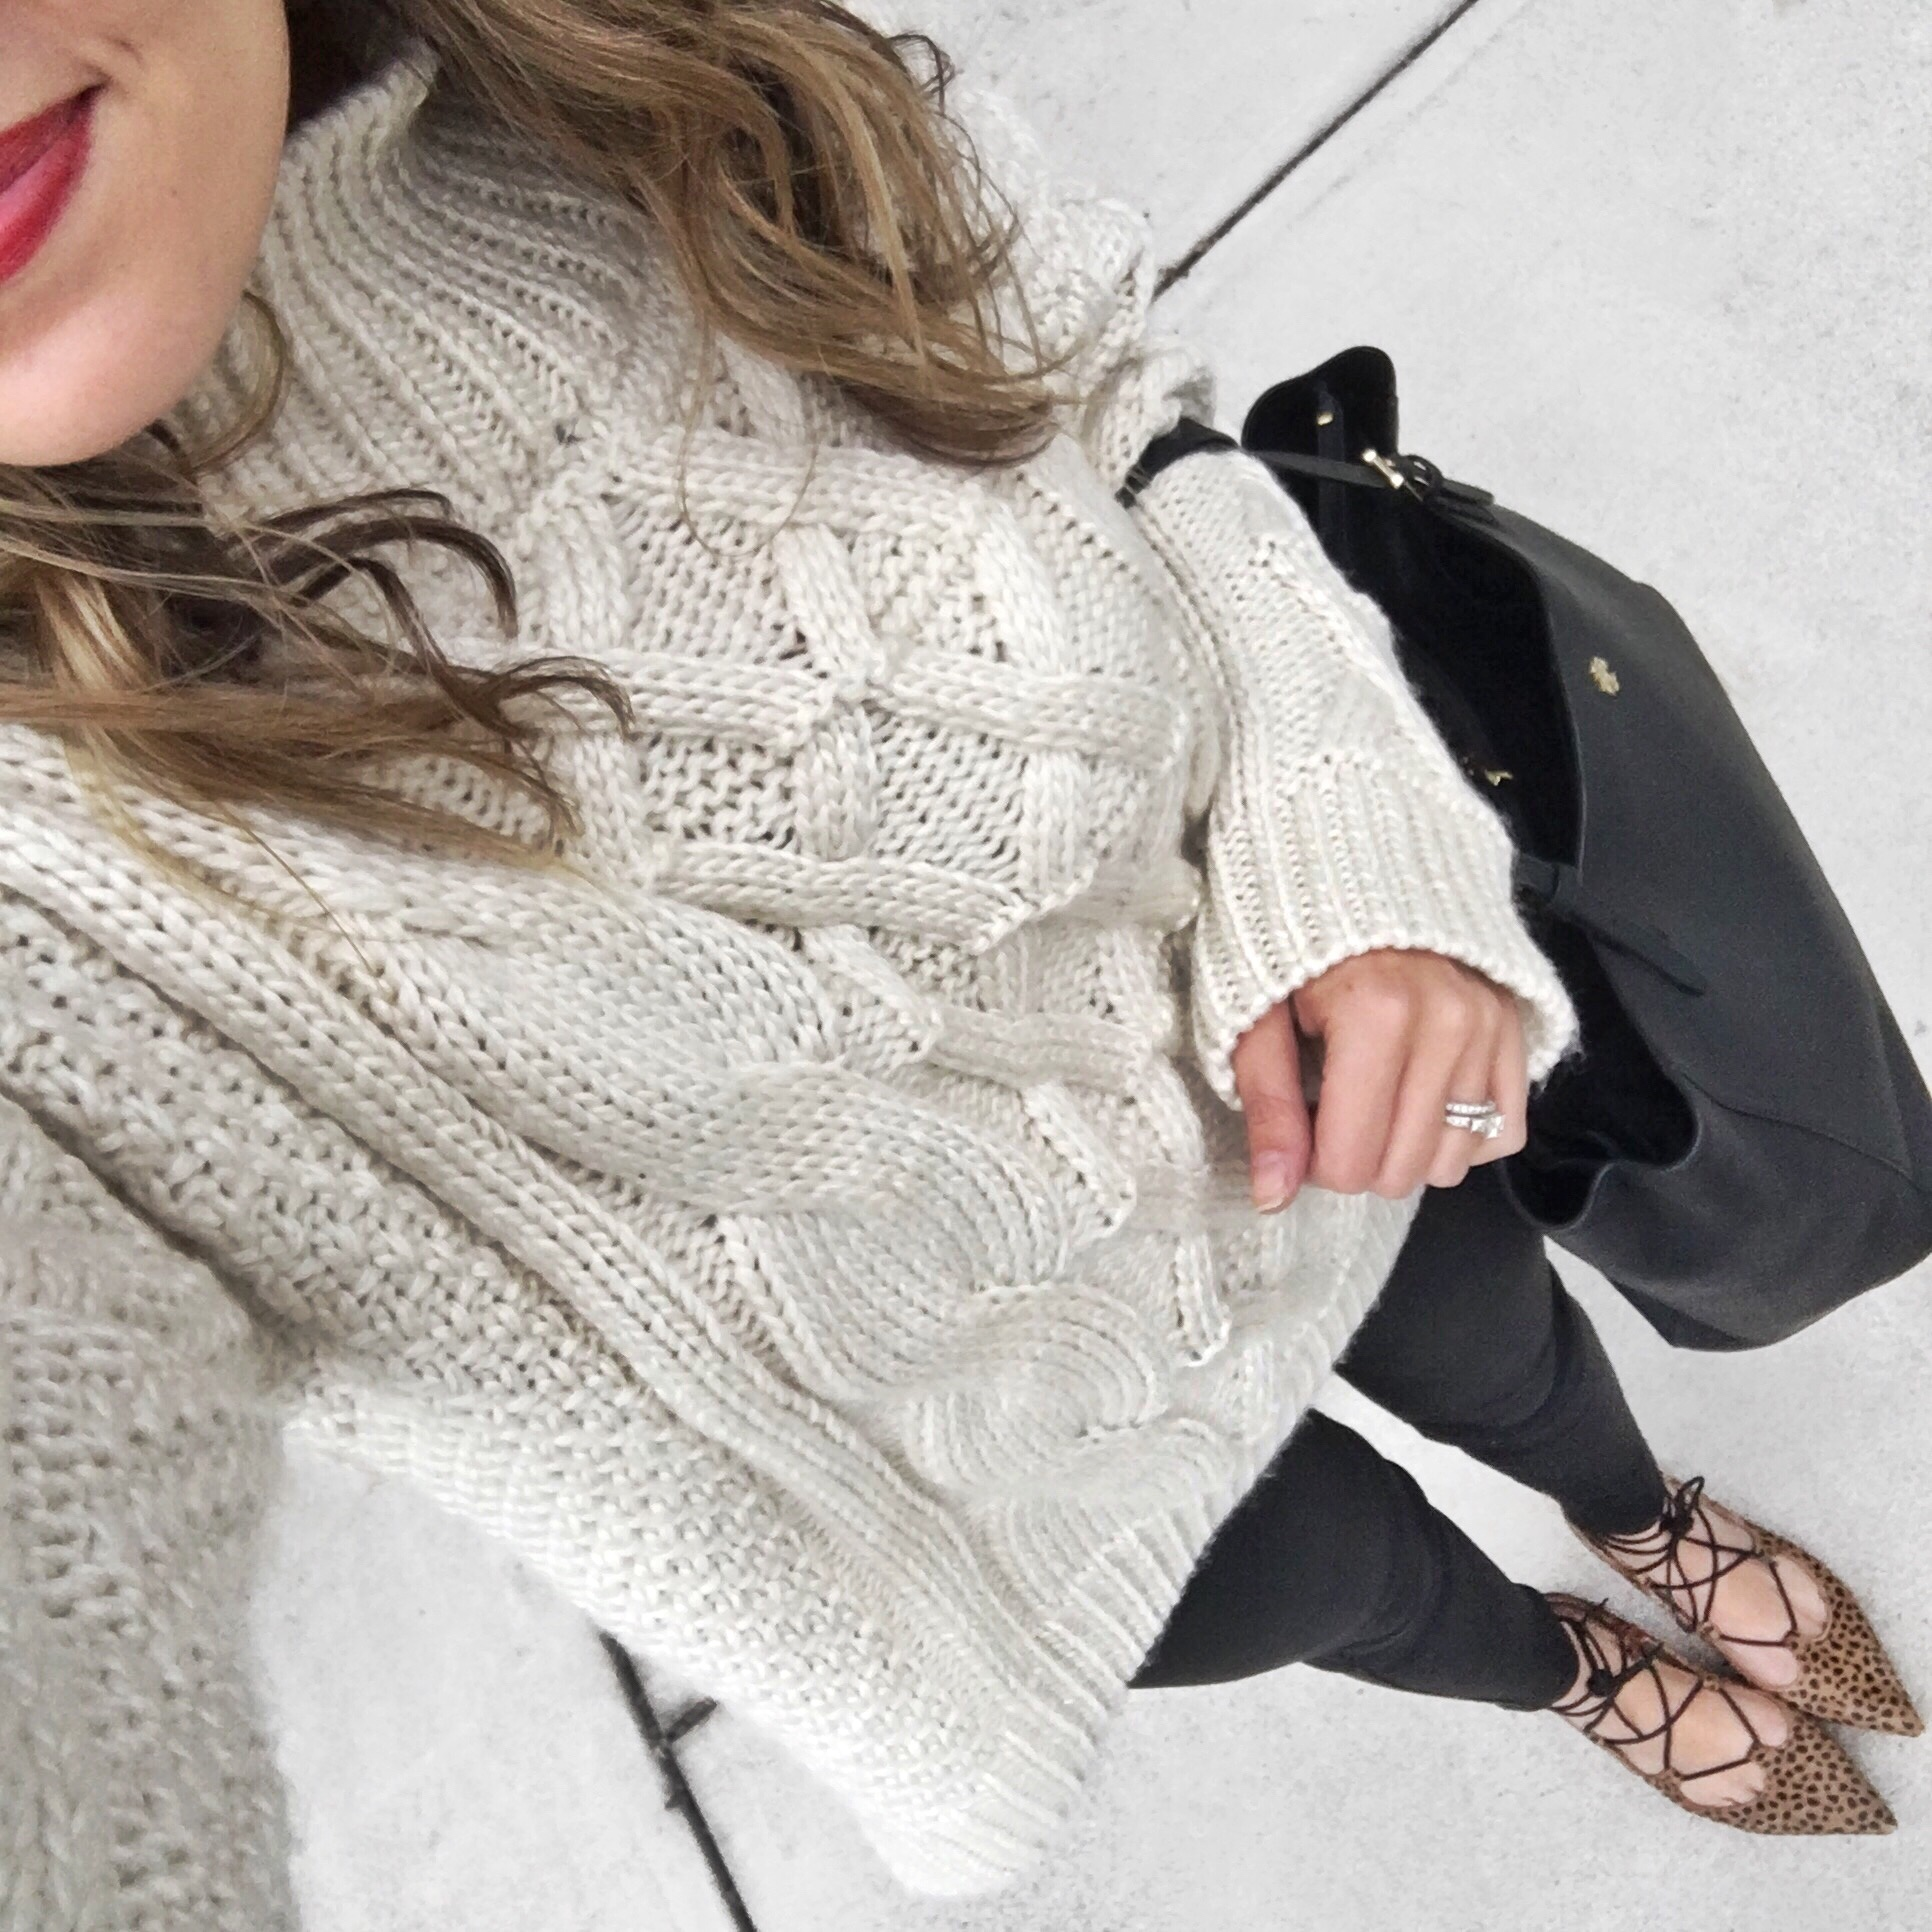 Oversized cable knit sweater - By Lauren M | bylaurenm.com